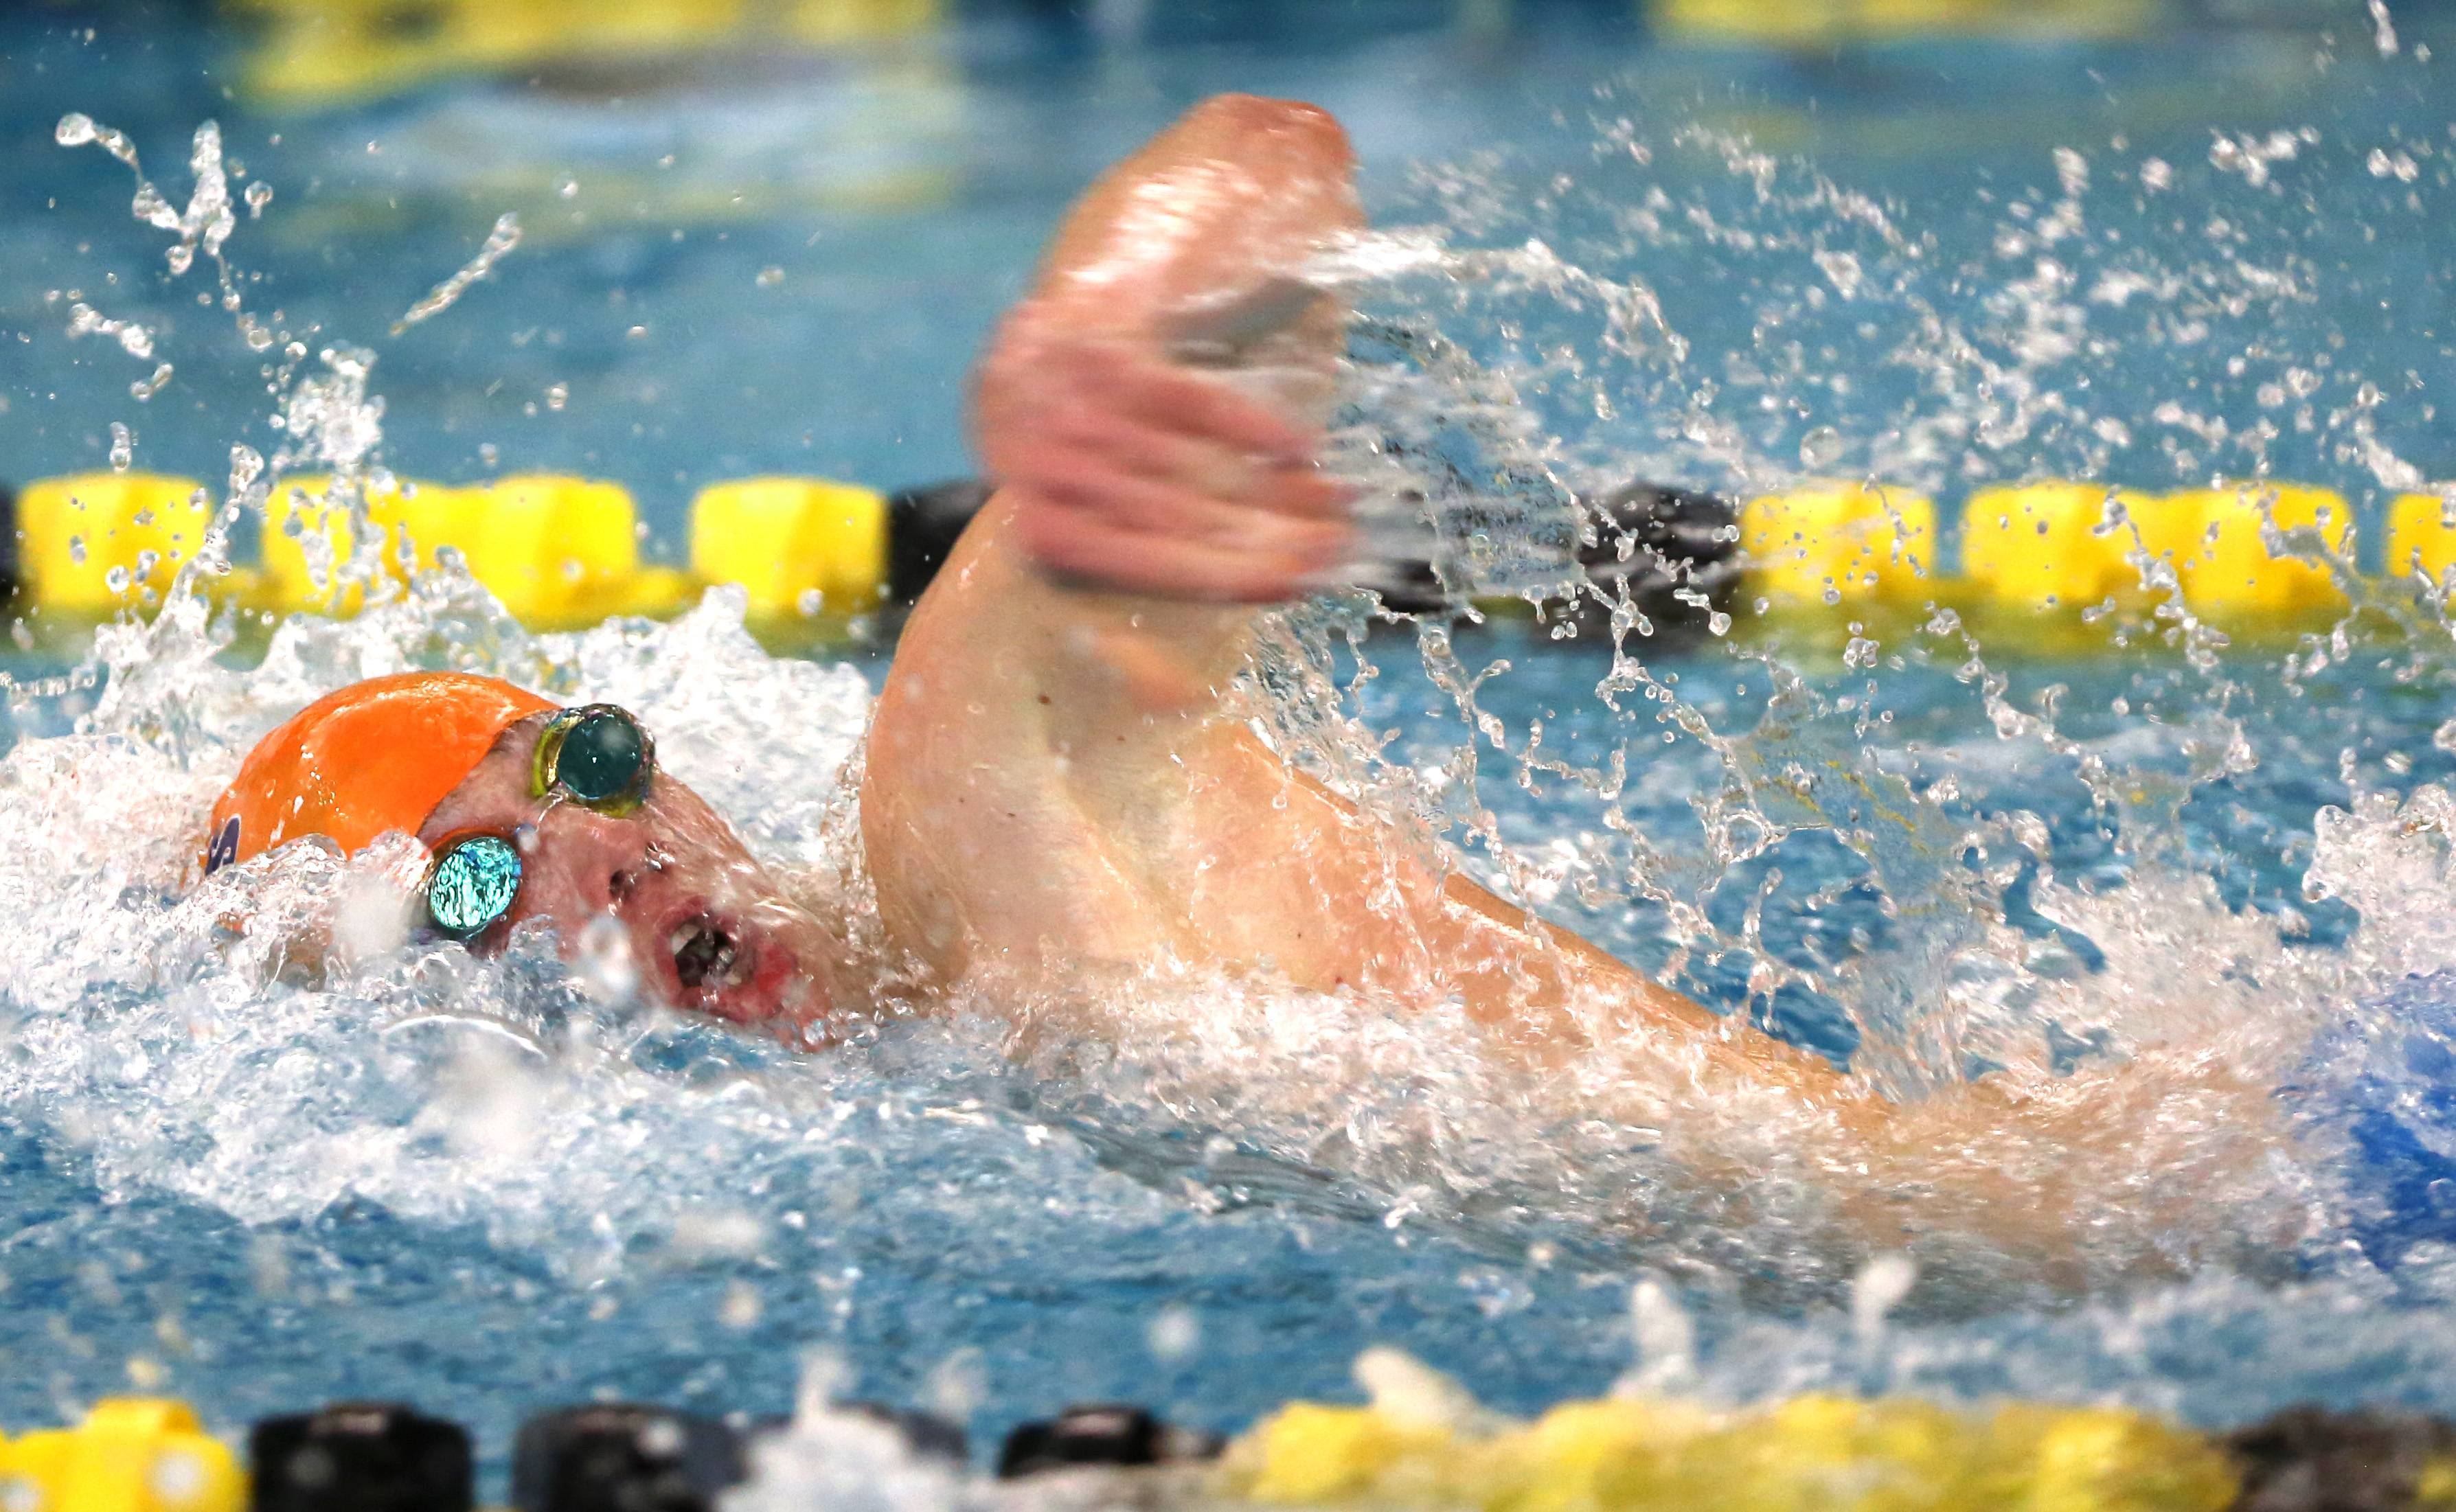 Naperville North's Steven Missak swims the 100 yard freestyle during the Metea Valley boys swimming sectional.